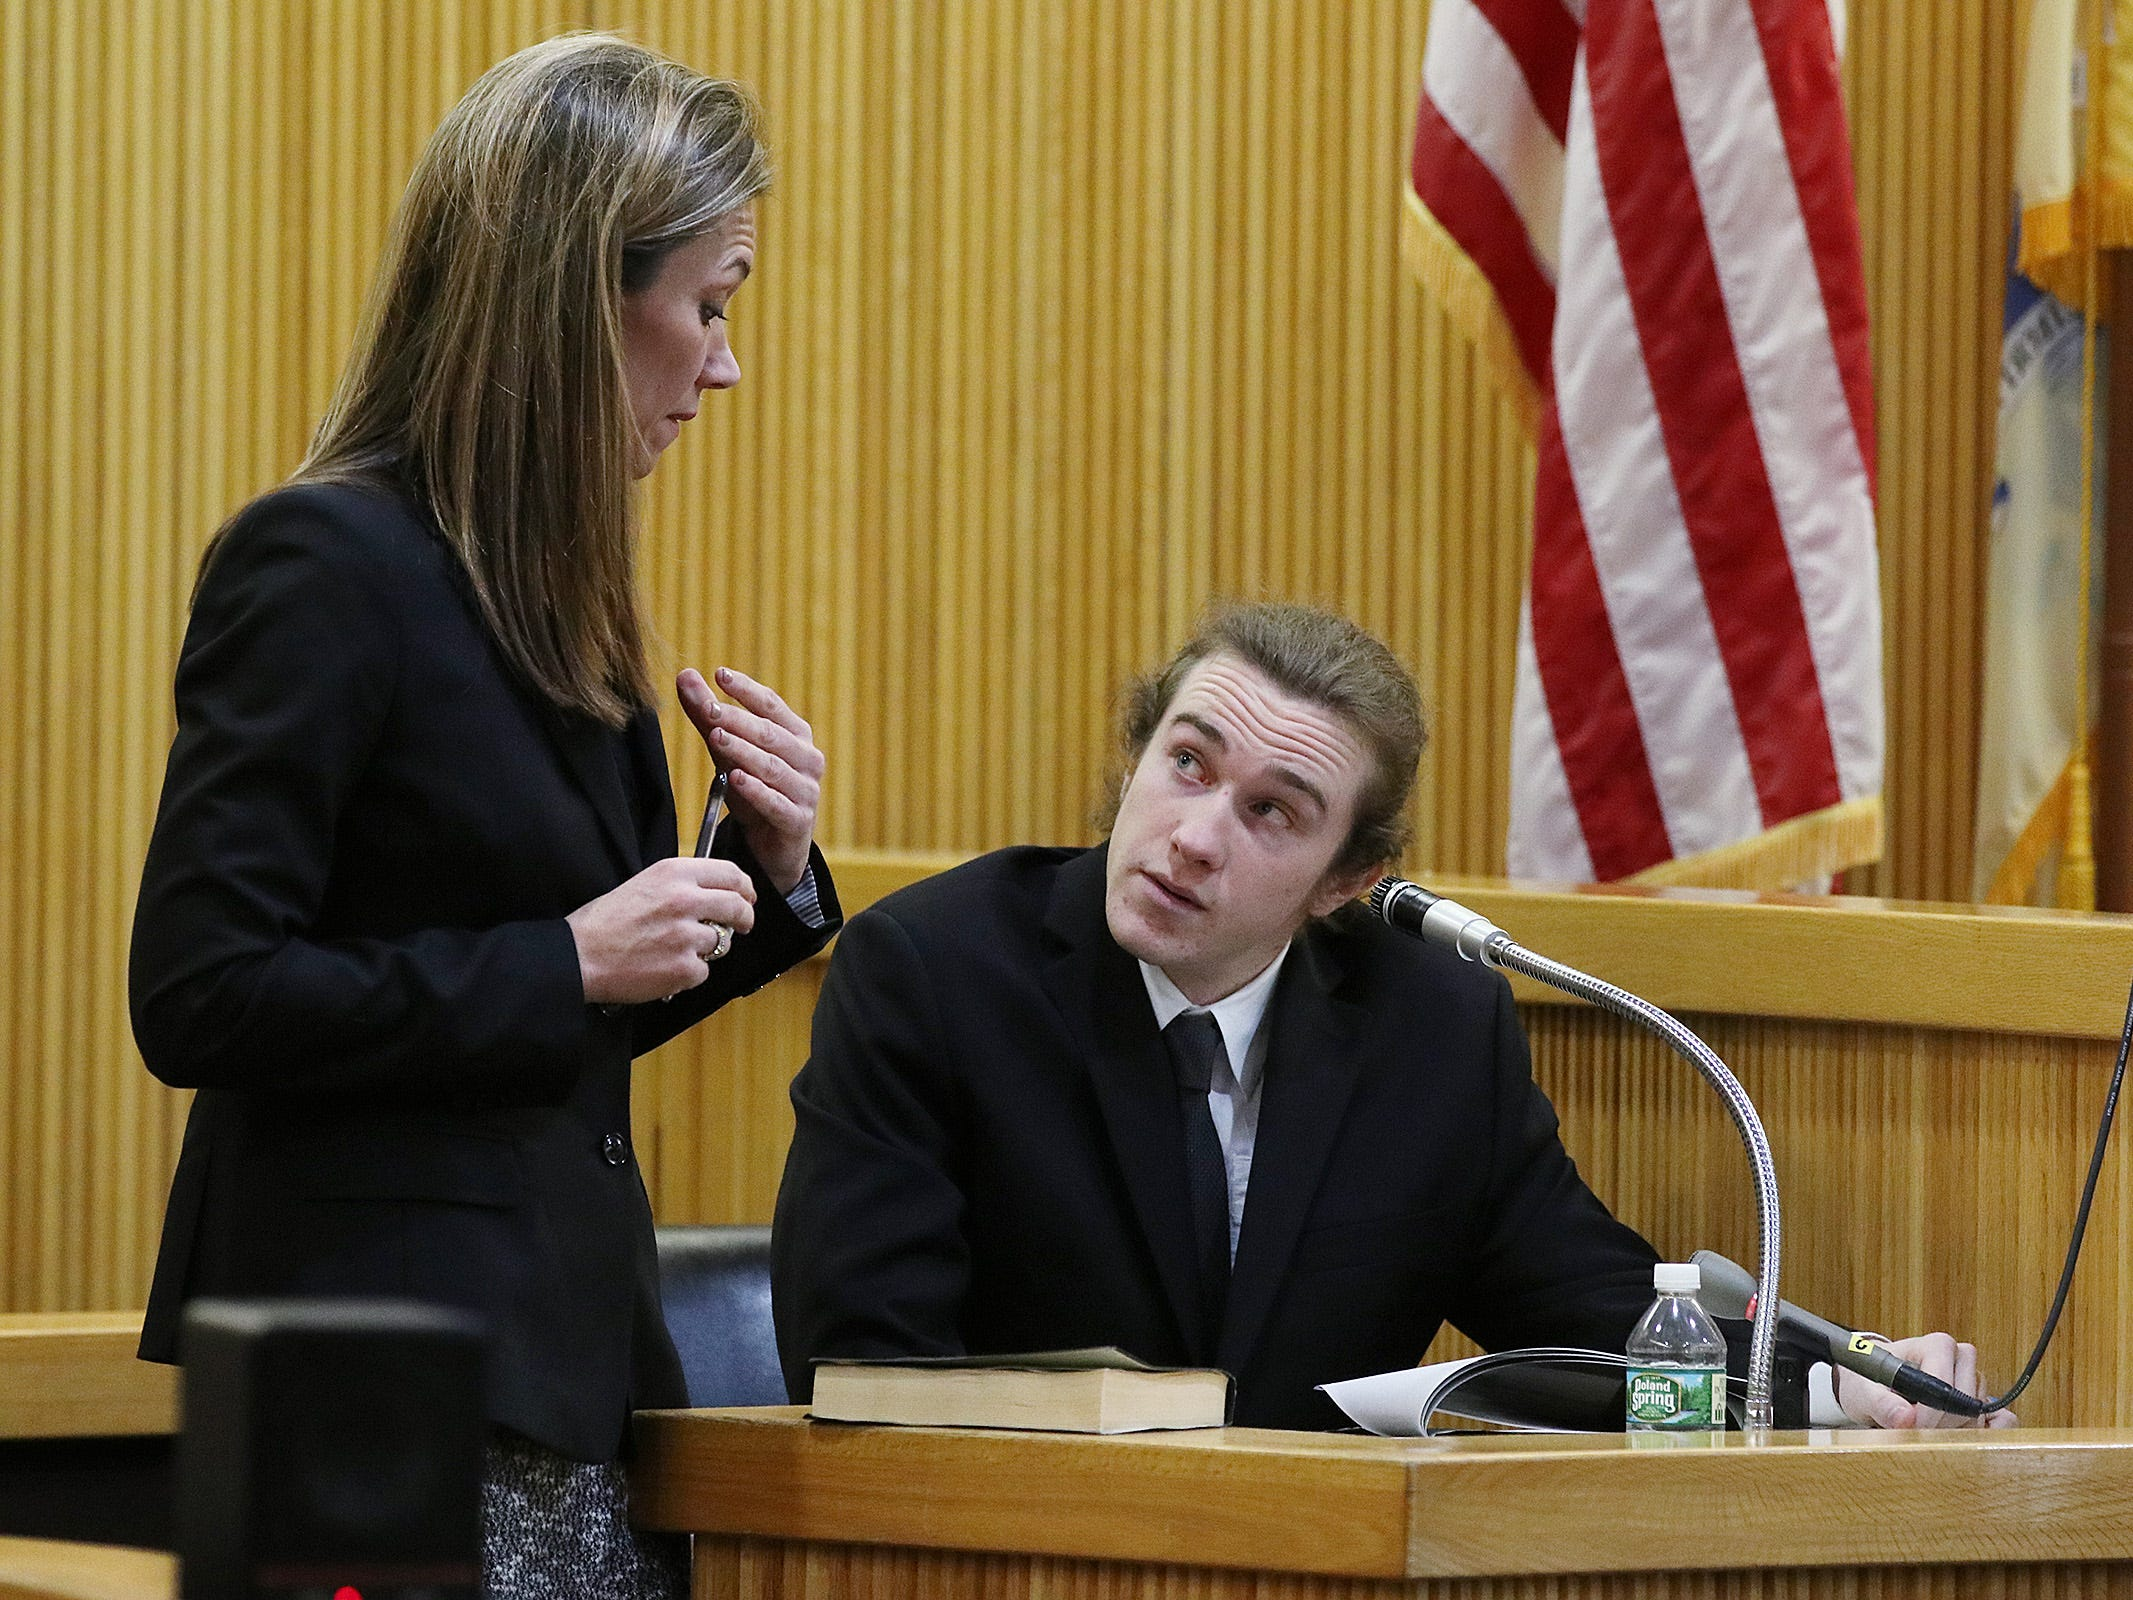 Meghan Doyle, assistant Monmouth County prosecutor, questions Anthony Curry, who worked with police and recorded a confession by his friend, Liam McAtasney, as he testifies during the trial of Liam McAtasney, who is charged with the murder of former high school classmate, Sarah Stern, before Superior Court Judge Richard W. English at the Monmouth County Courthouse in Freehold, NJ Thursday, February 7, 2019.